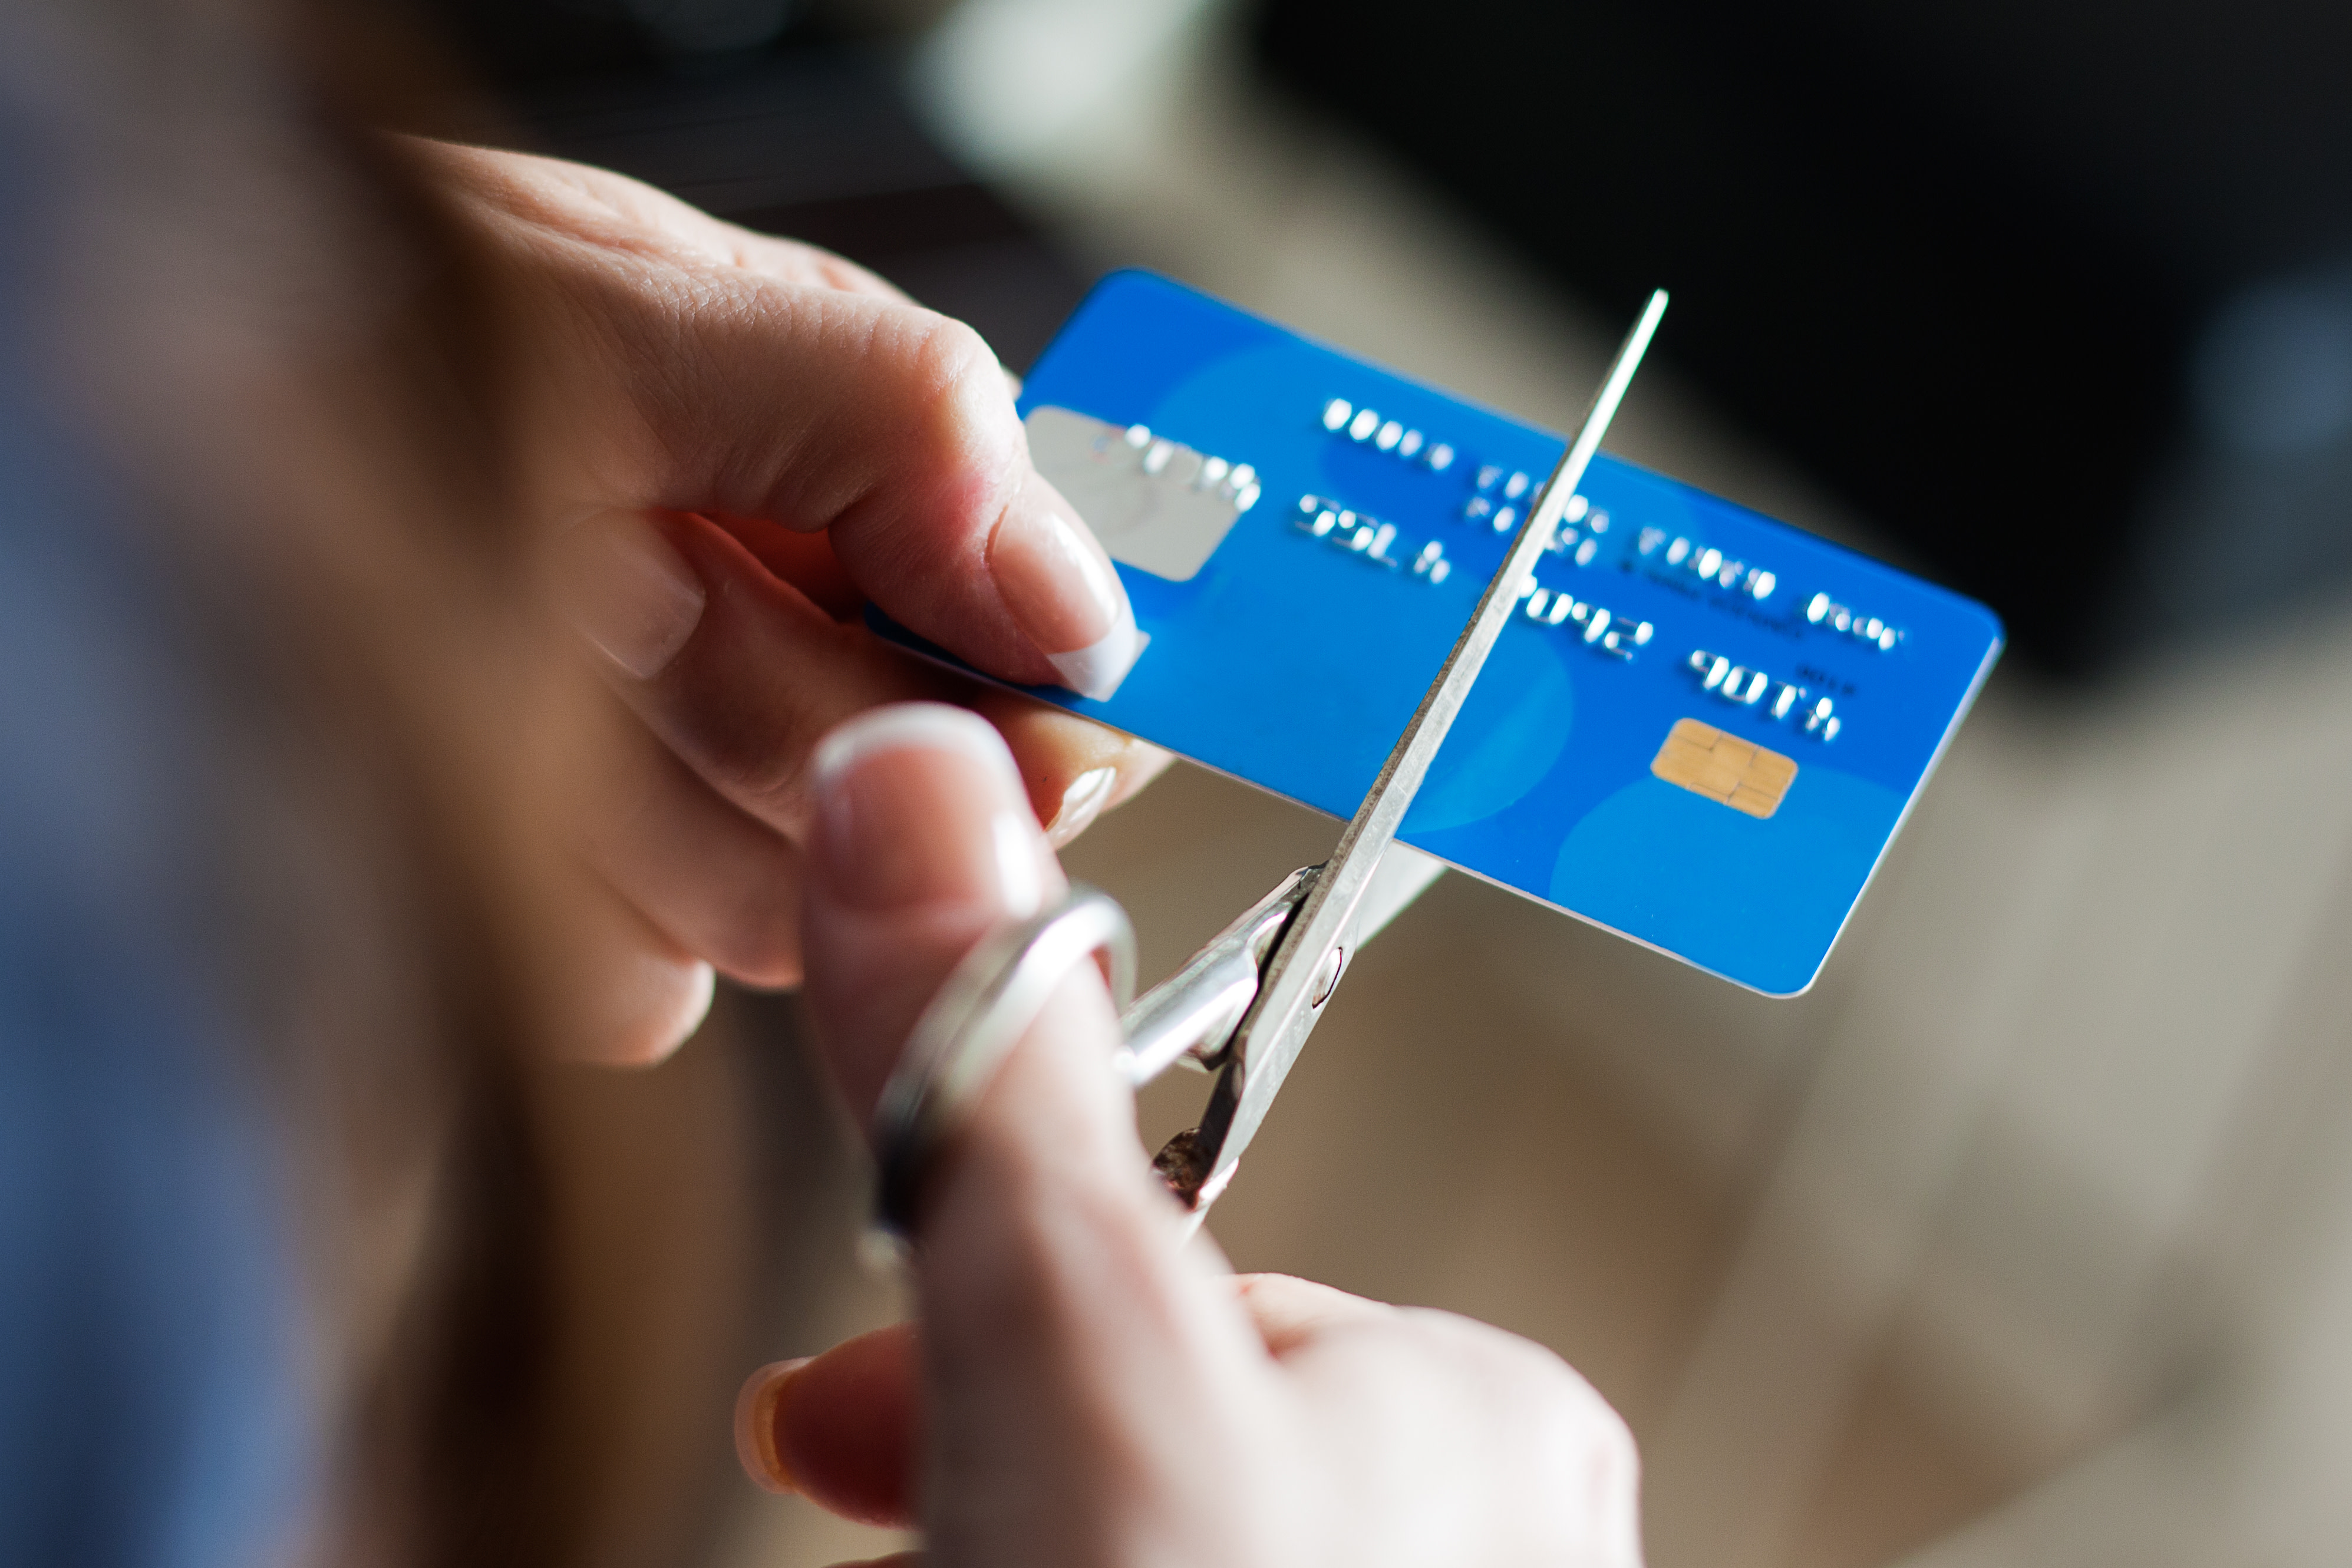 Person cutting a credit card with scissors